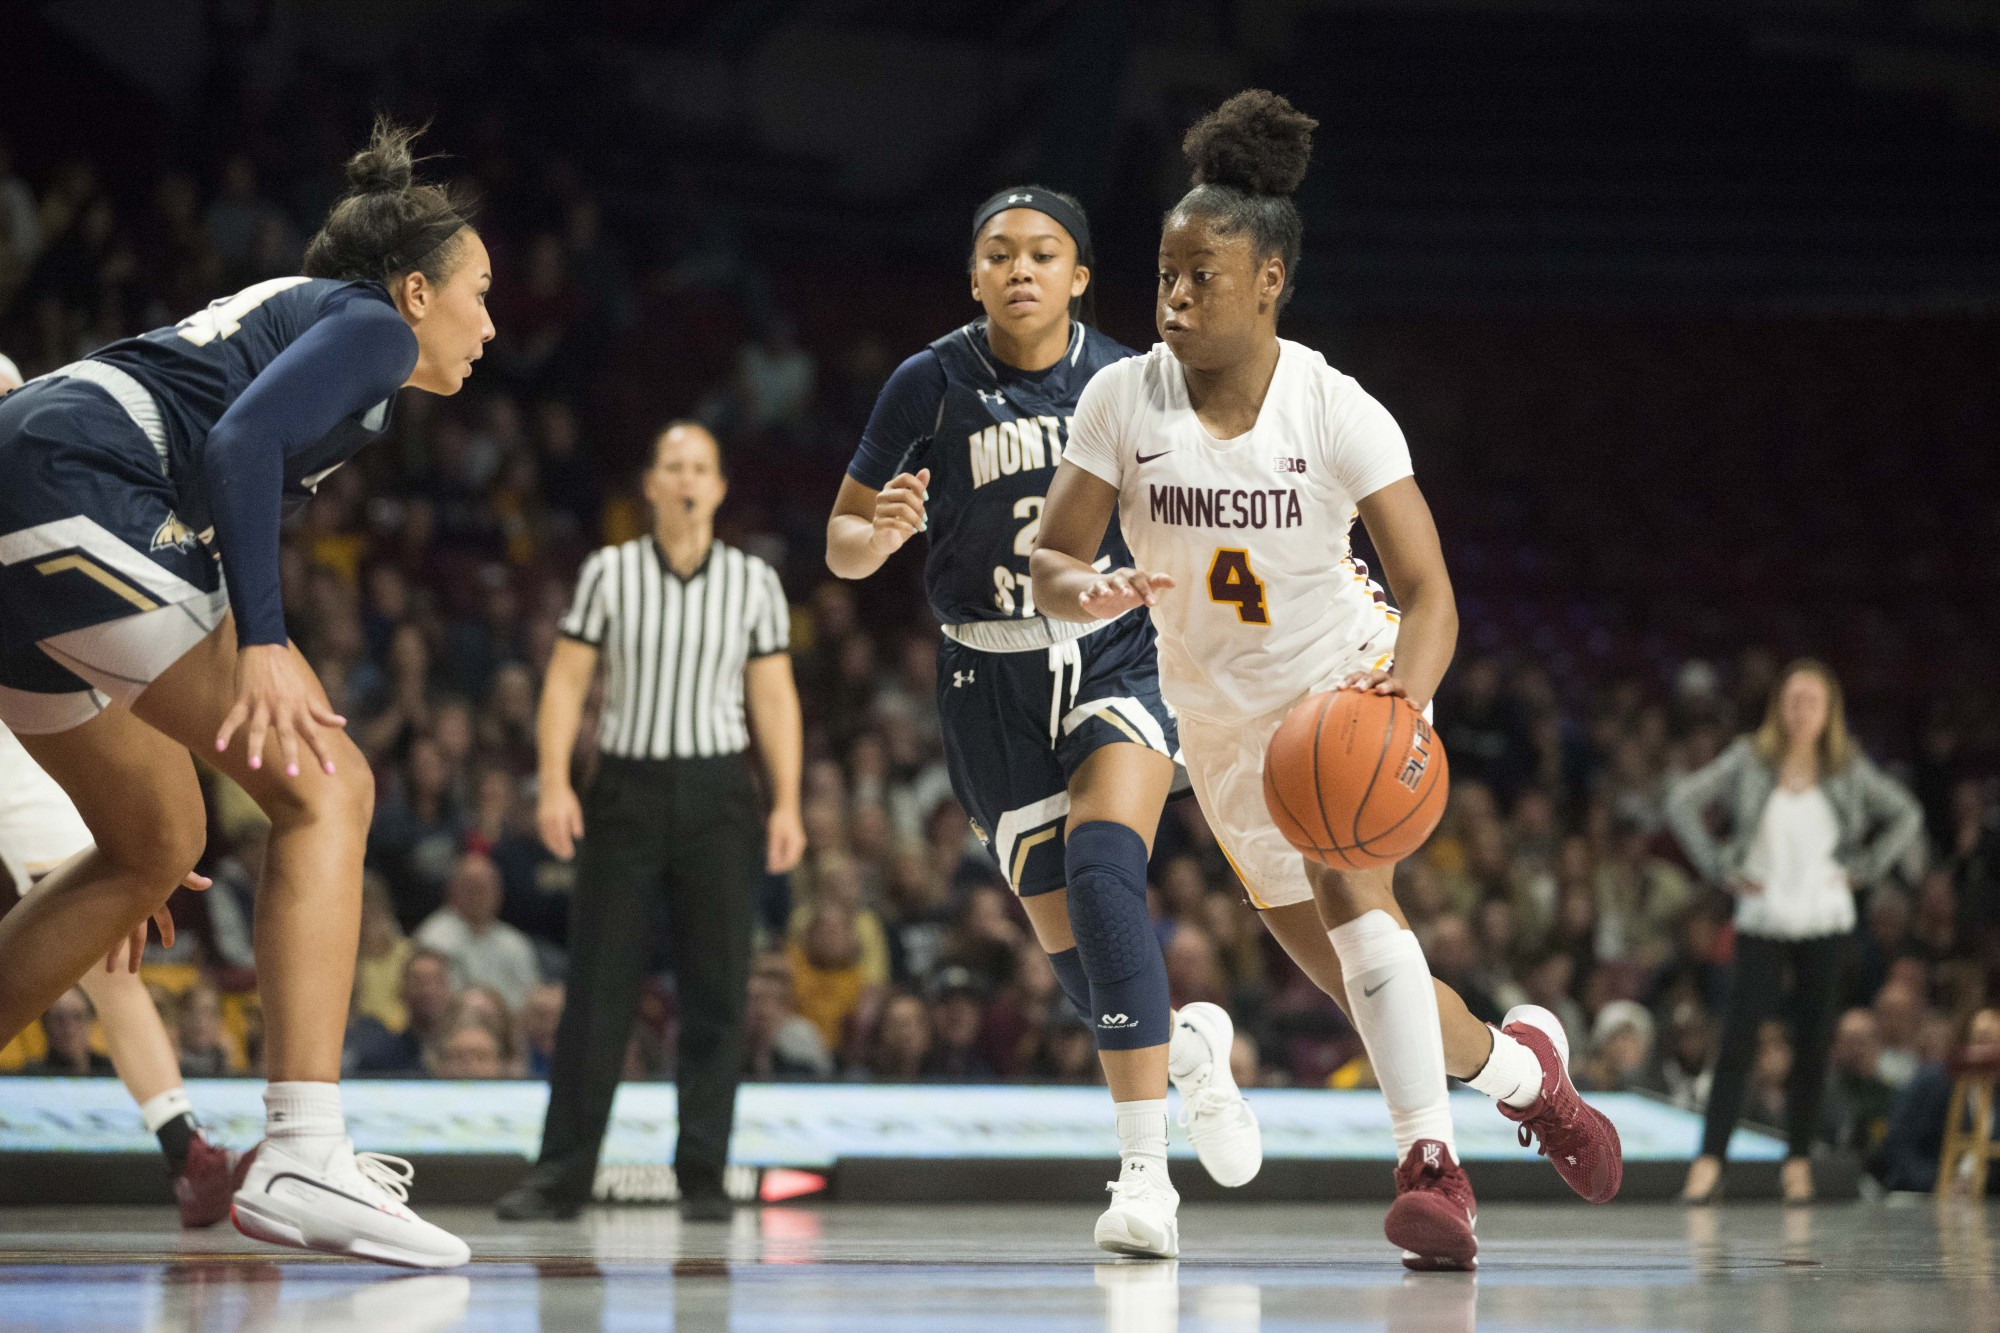 Guard Jasmine Powell looks to drive towards the hoop in Williams Arena on Saturday, Nov. 23. The Gophers went on to defeat Montana State 71-60.